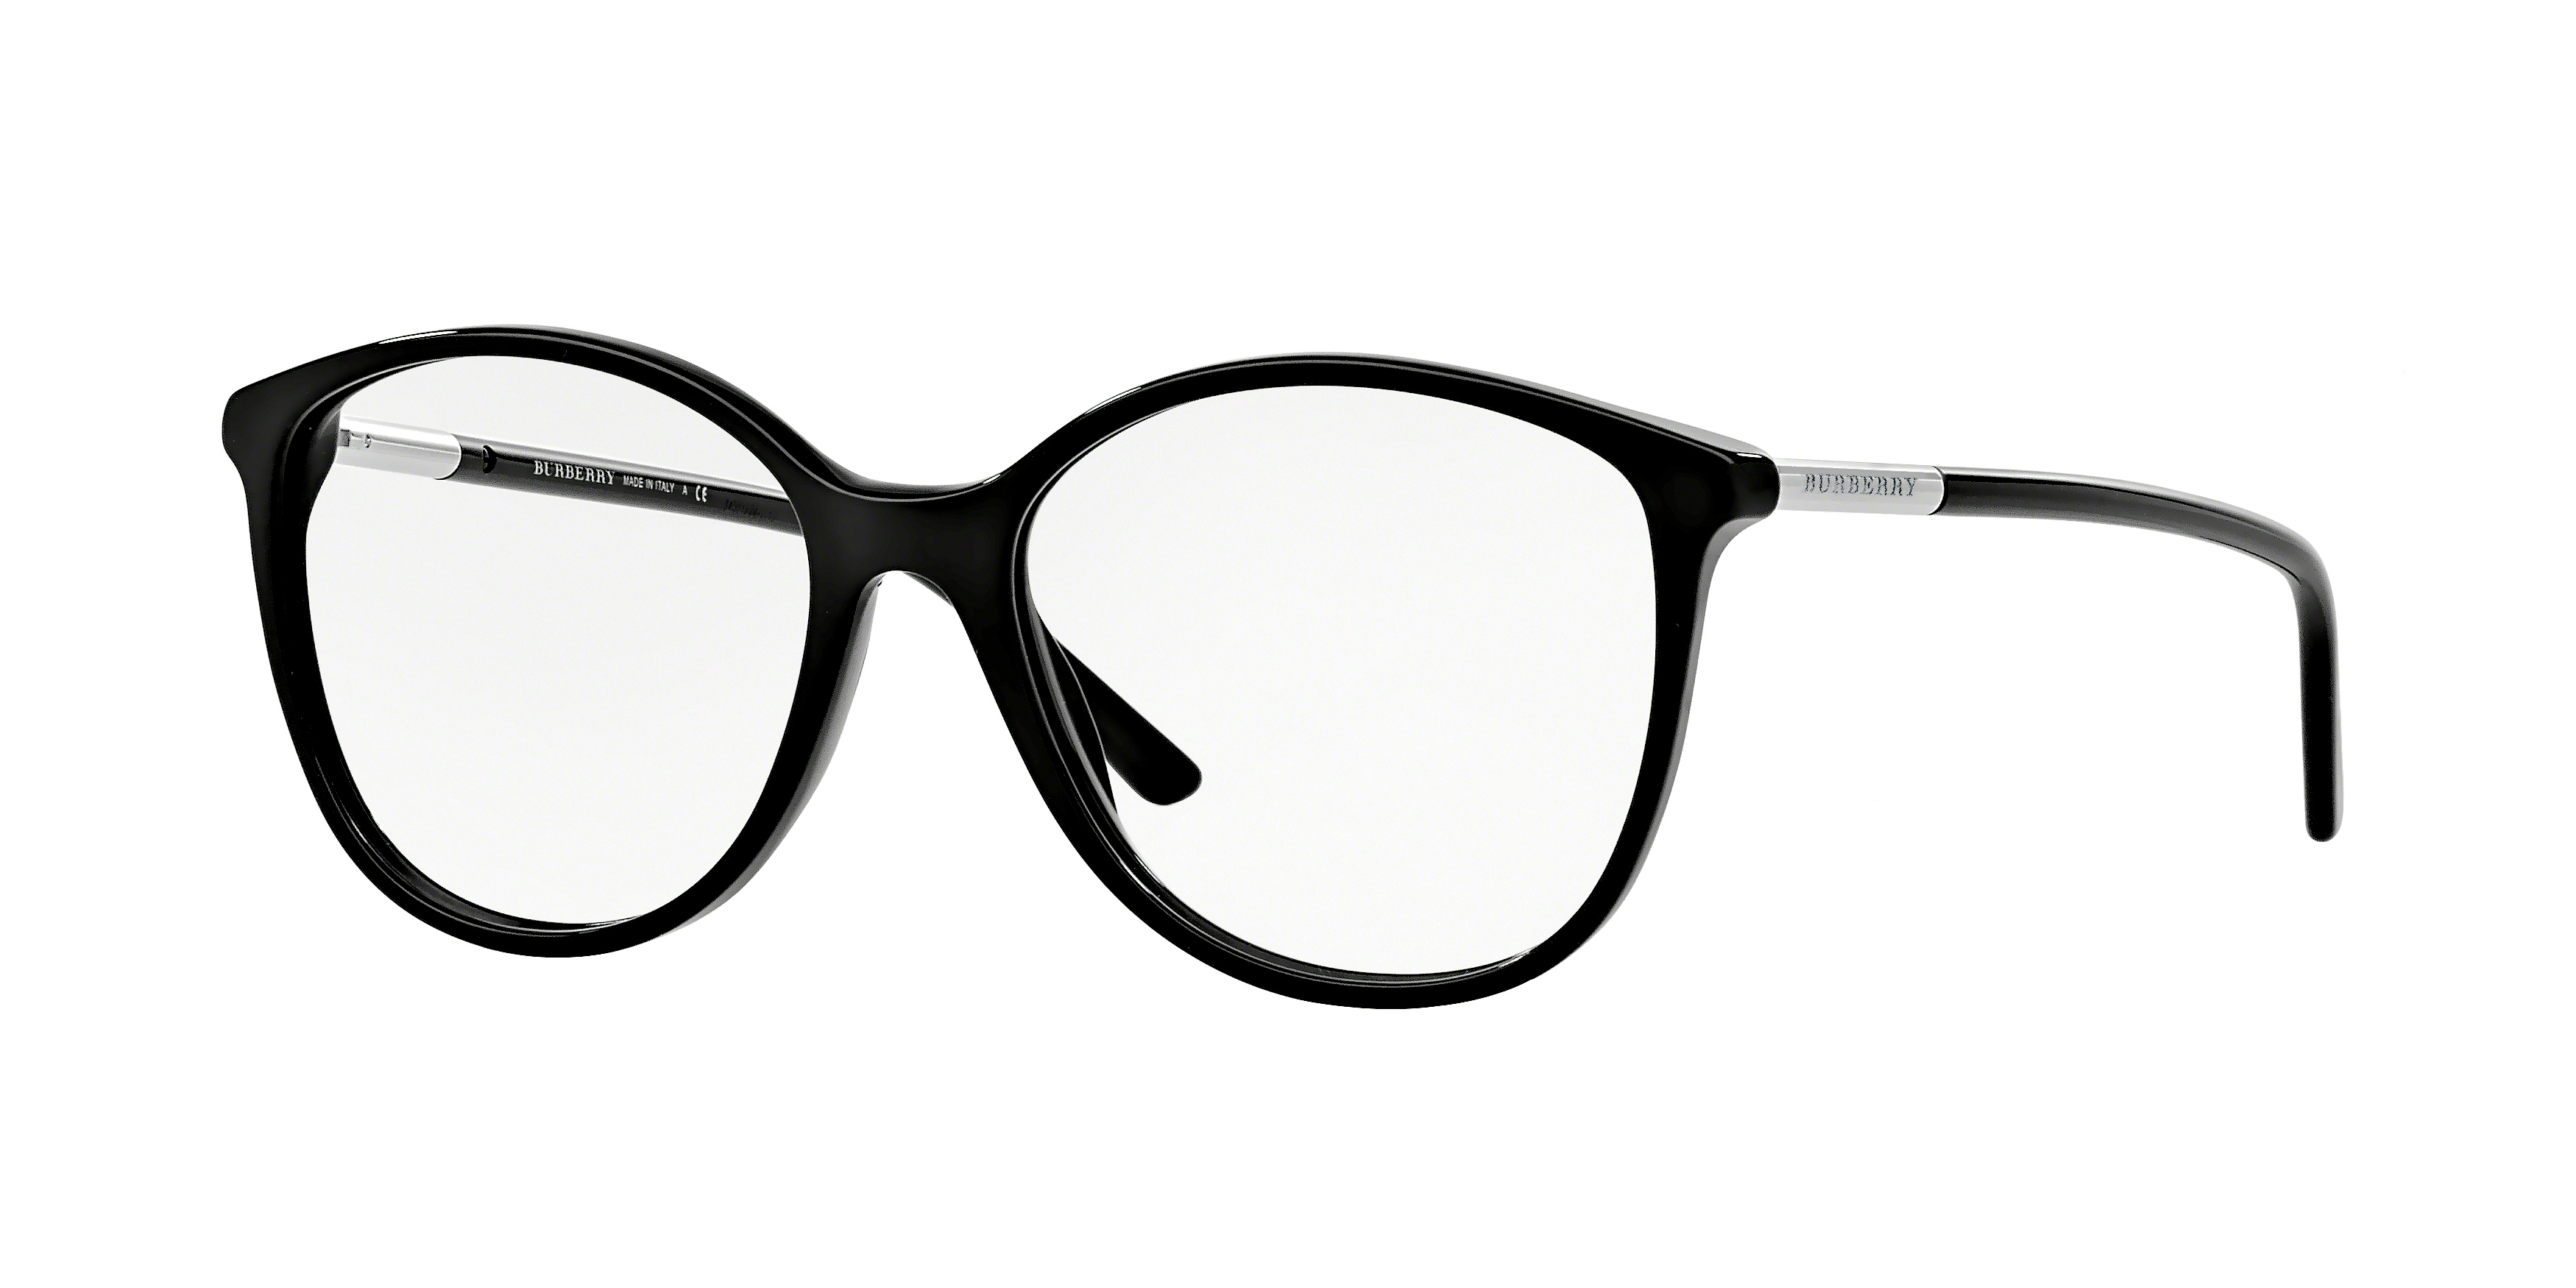 dd5598a97675 Burberry BE2128 Eyeglass Frames